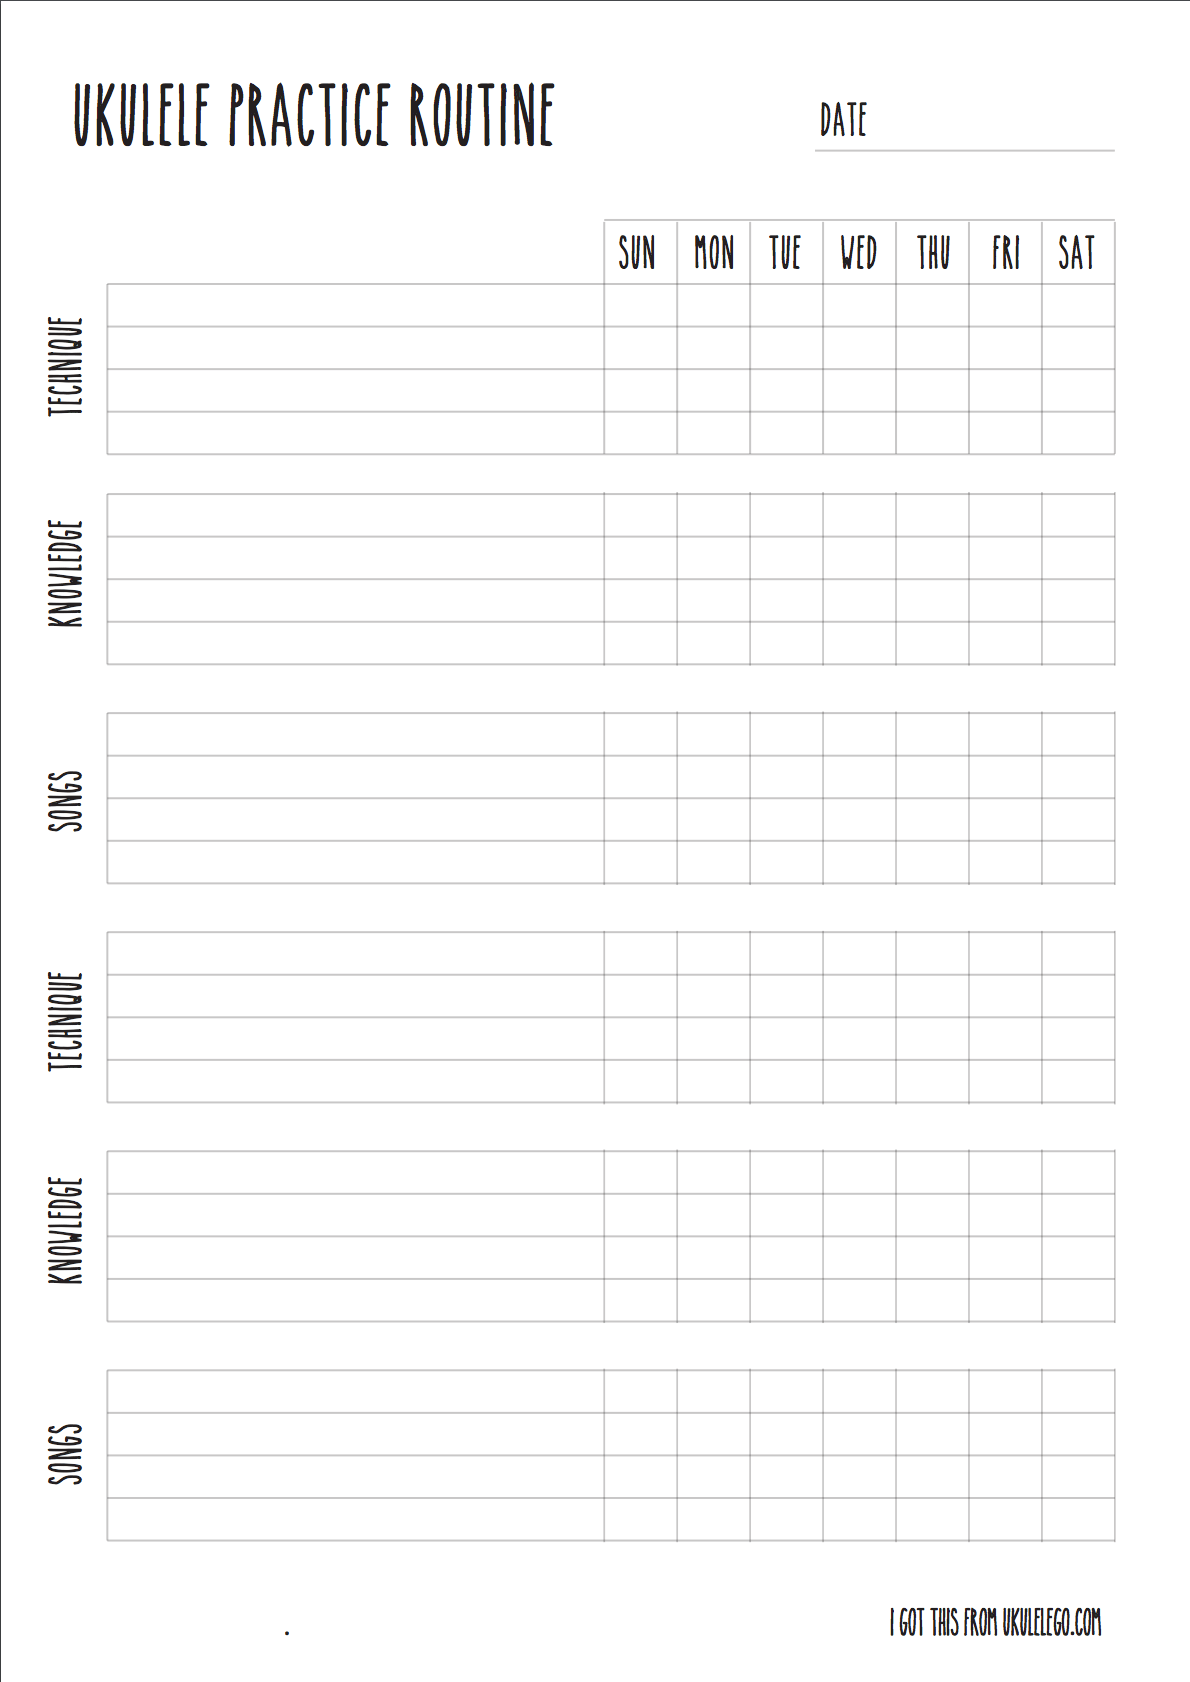 ukulele practice worksheet